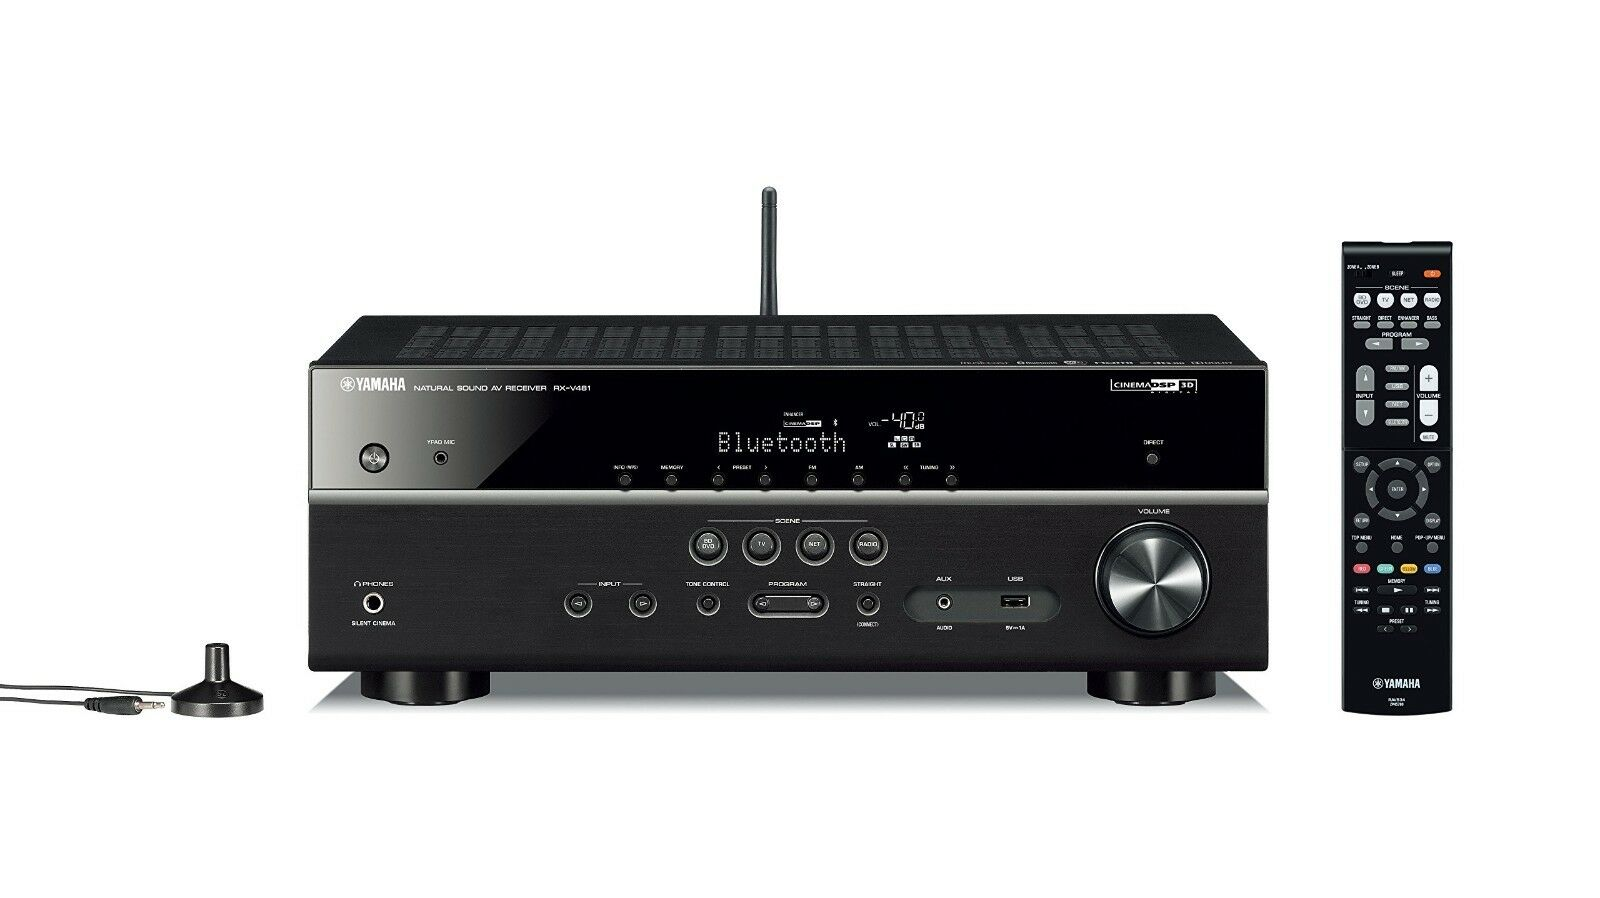 yamaha rx v481d dab 5 1 av receiver wlan hifi hdmi. Black Bedroom Furniture Sets. Home Design Ideas